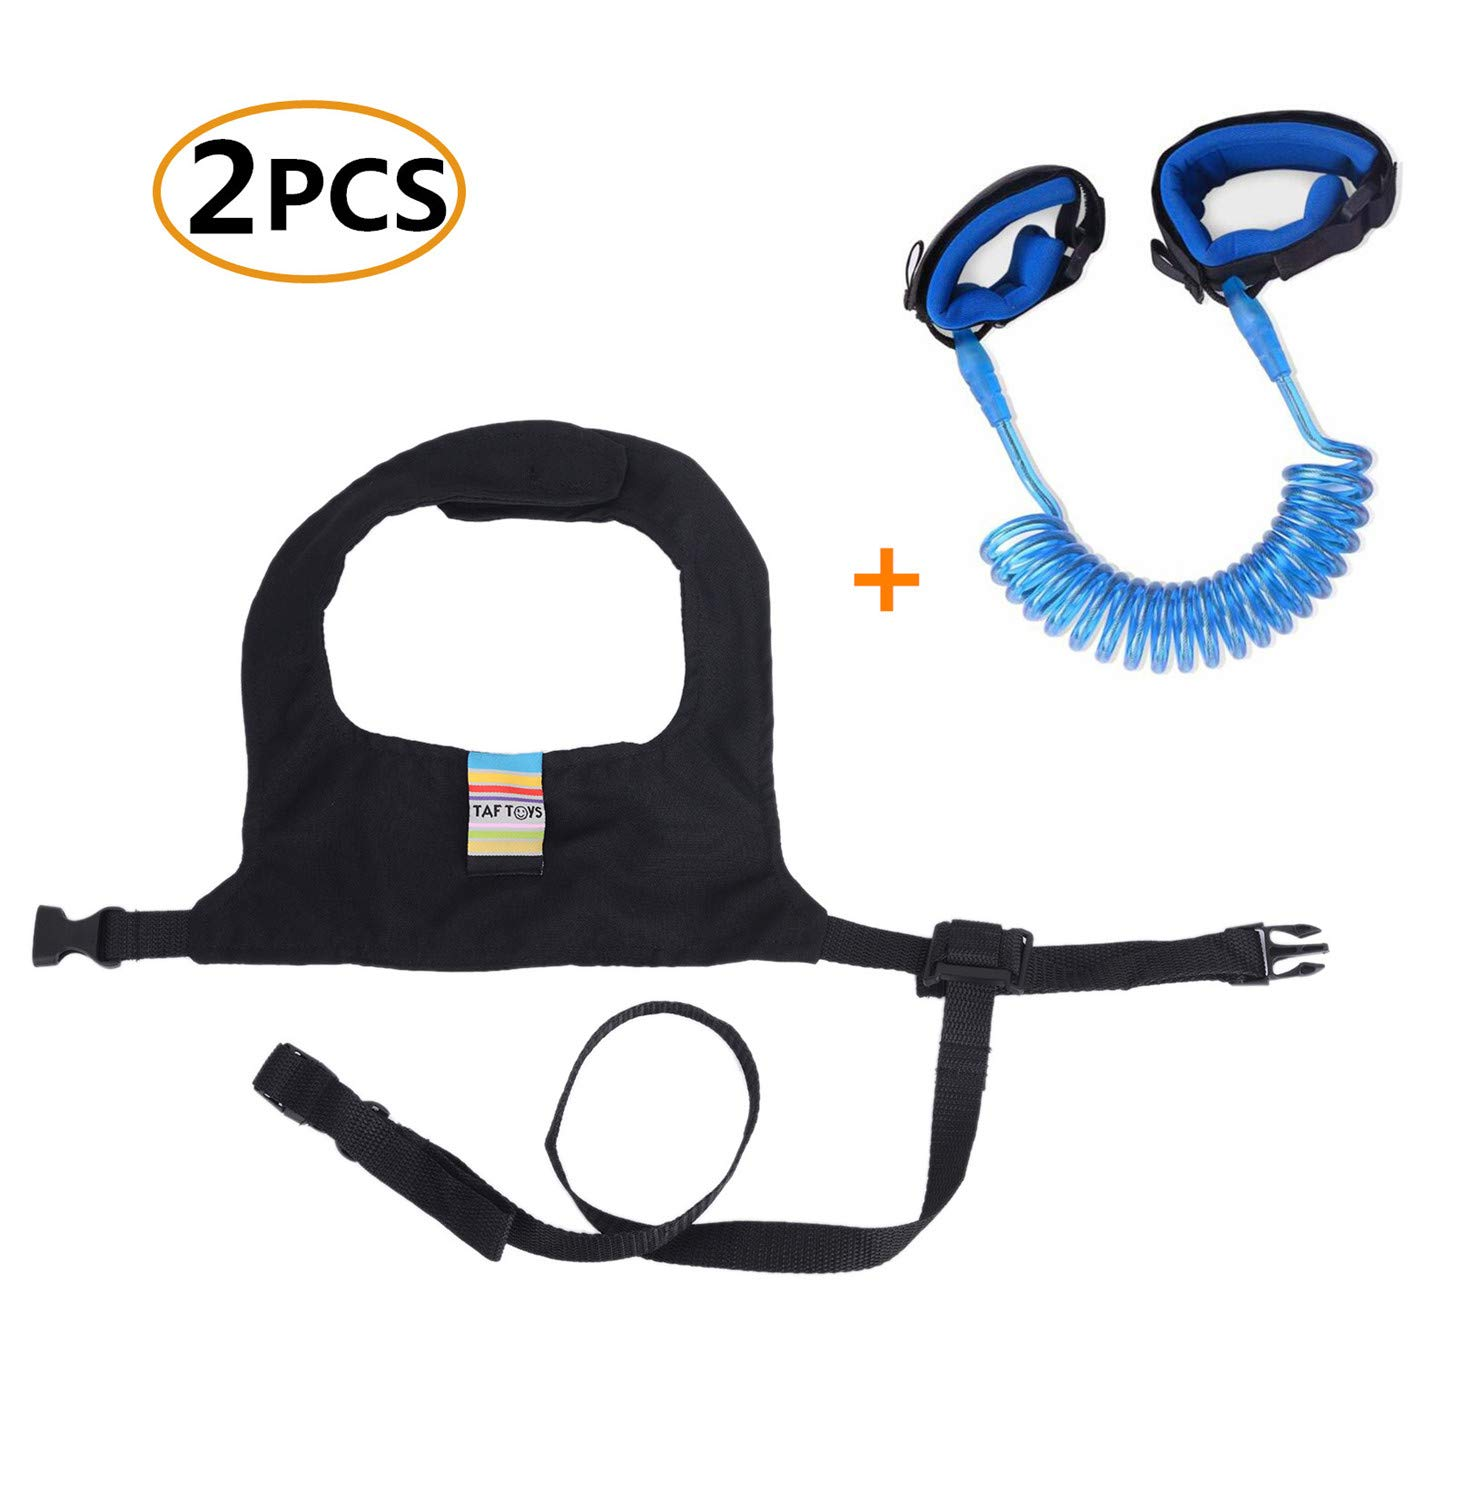 Emwel 1.5M Baby Toddler Restraint Security Harness Strap Leash Walking Hand Belt Child Kids Travel Cares Safety Elastic Wire Rope Anti Lost Wristband Safety Wrist Link Belt Blue